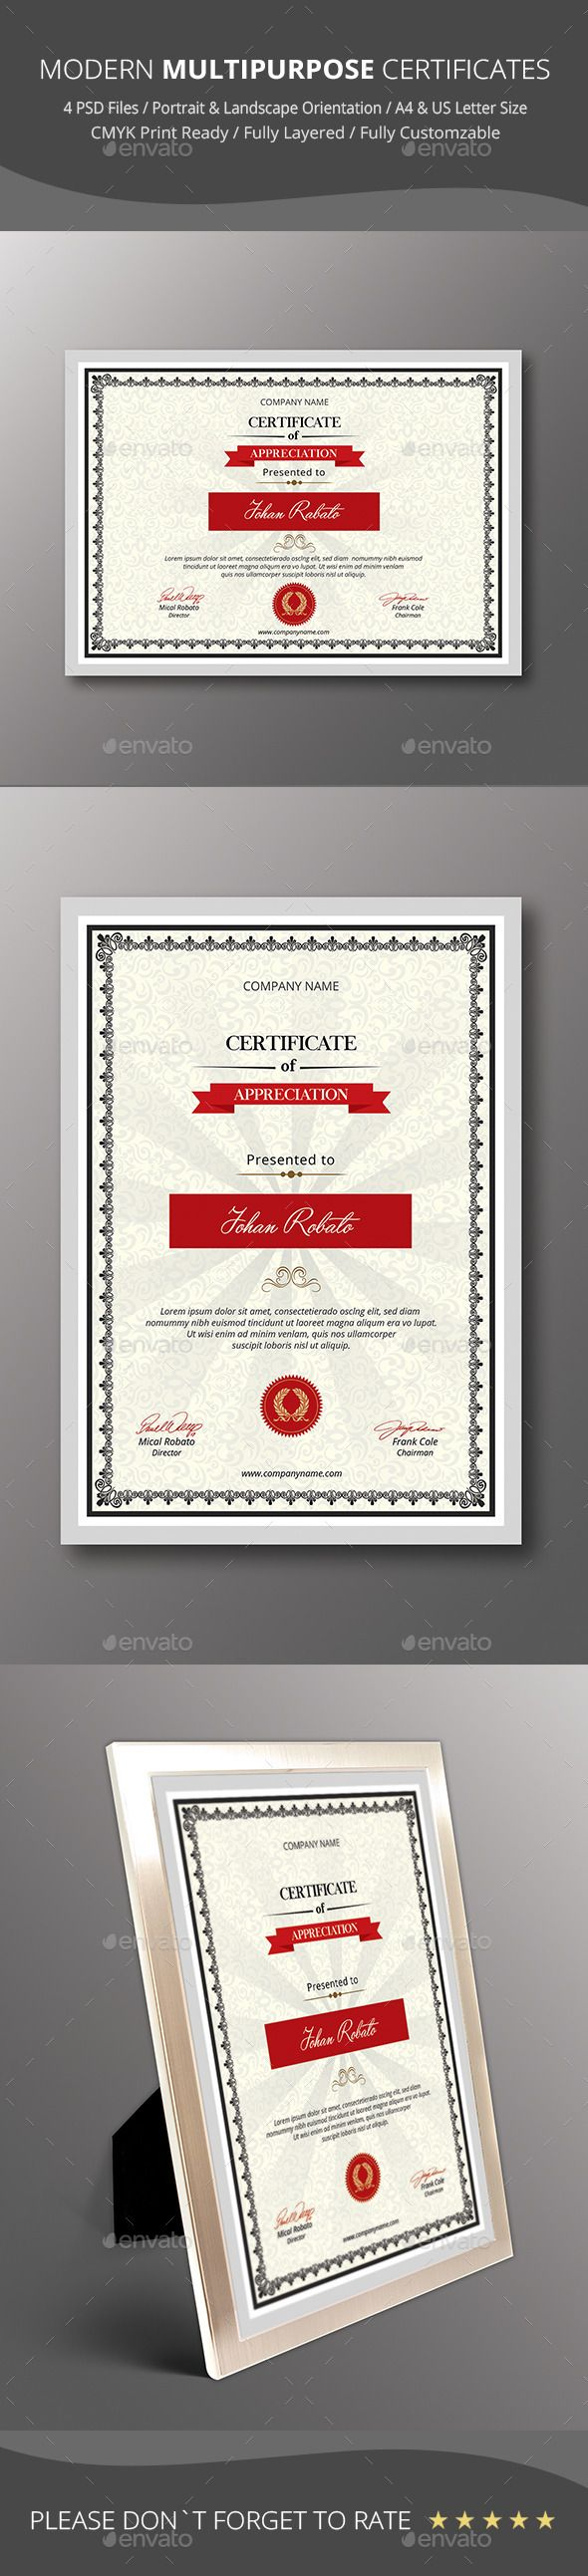 31 best psd templates certificate design images on pinterest psd modern multipurpose certificates certificatetemplate download httpgraphicriveritem yadclub Choice Image